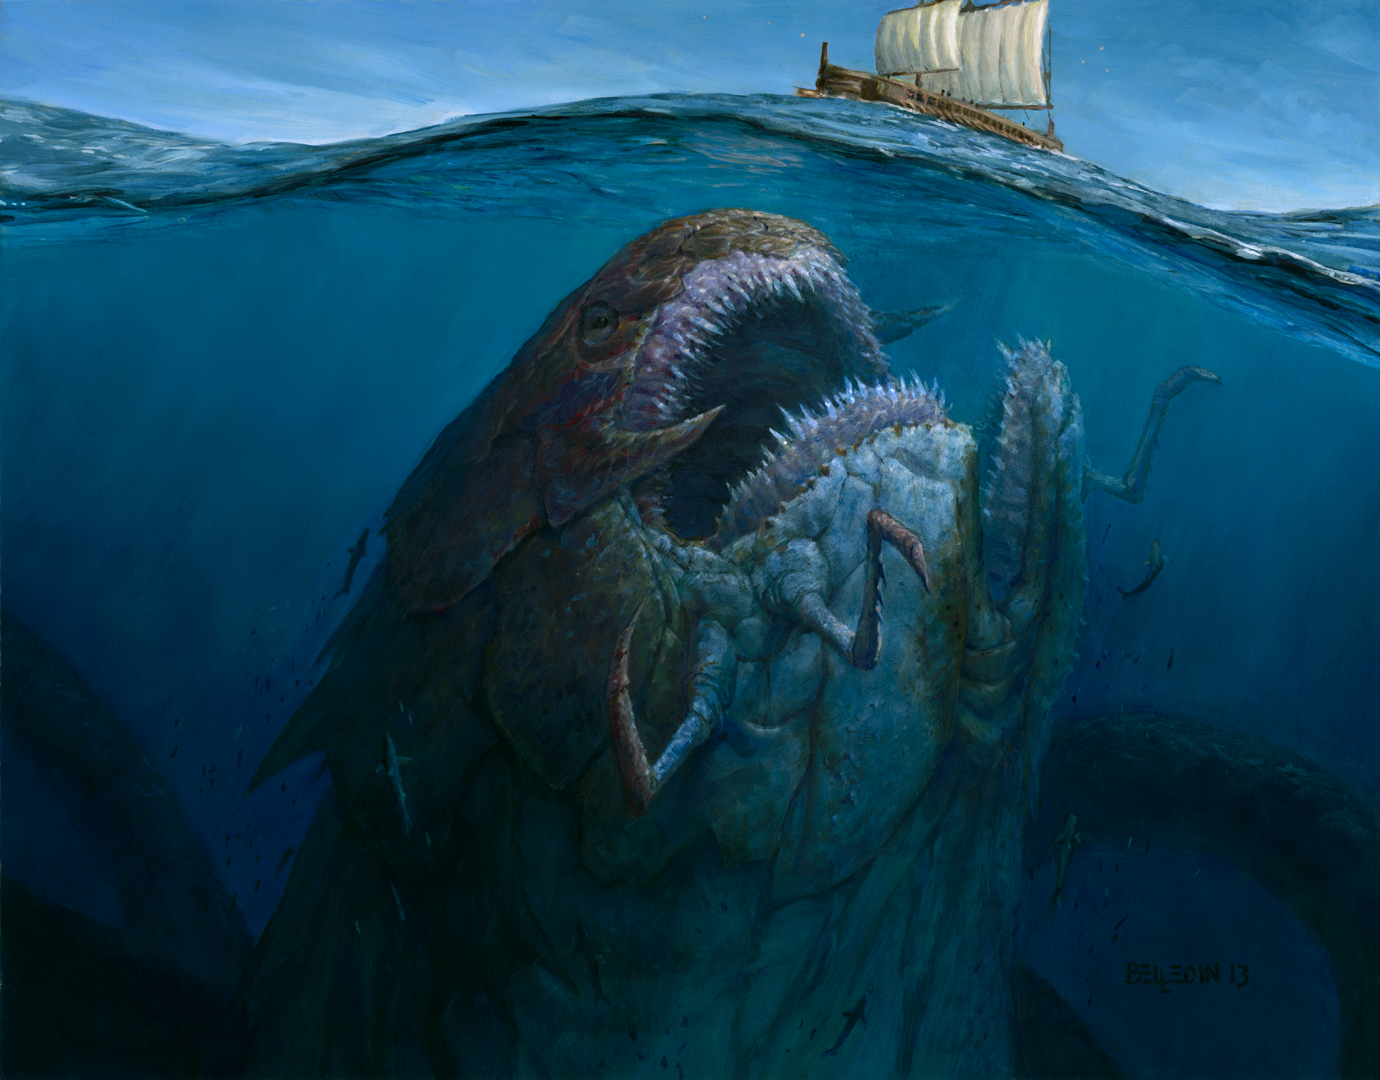 Real giant sea creatures - photo#28